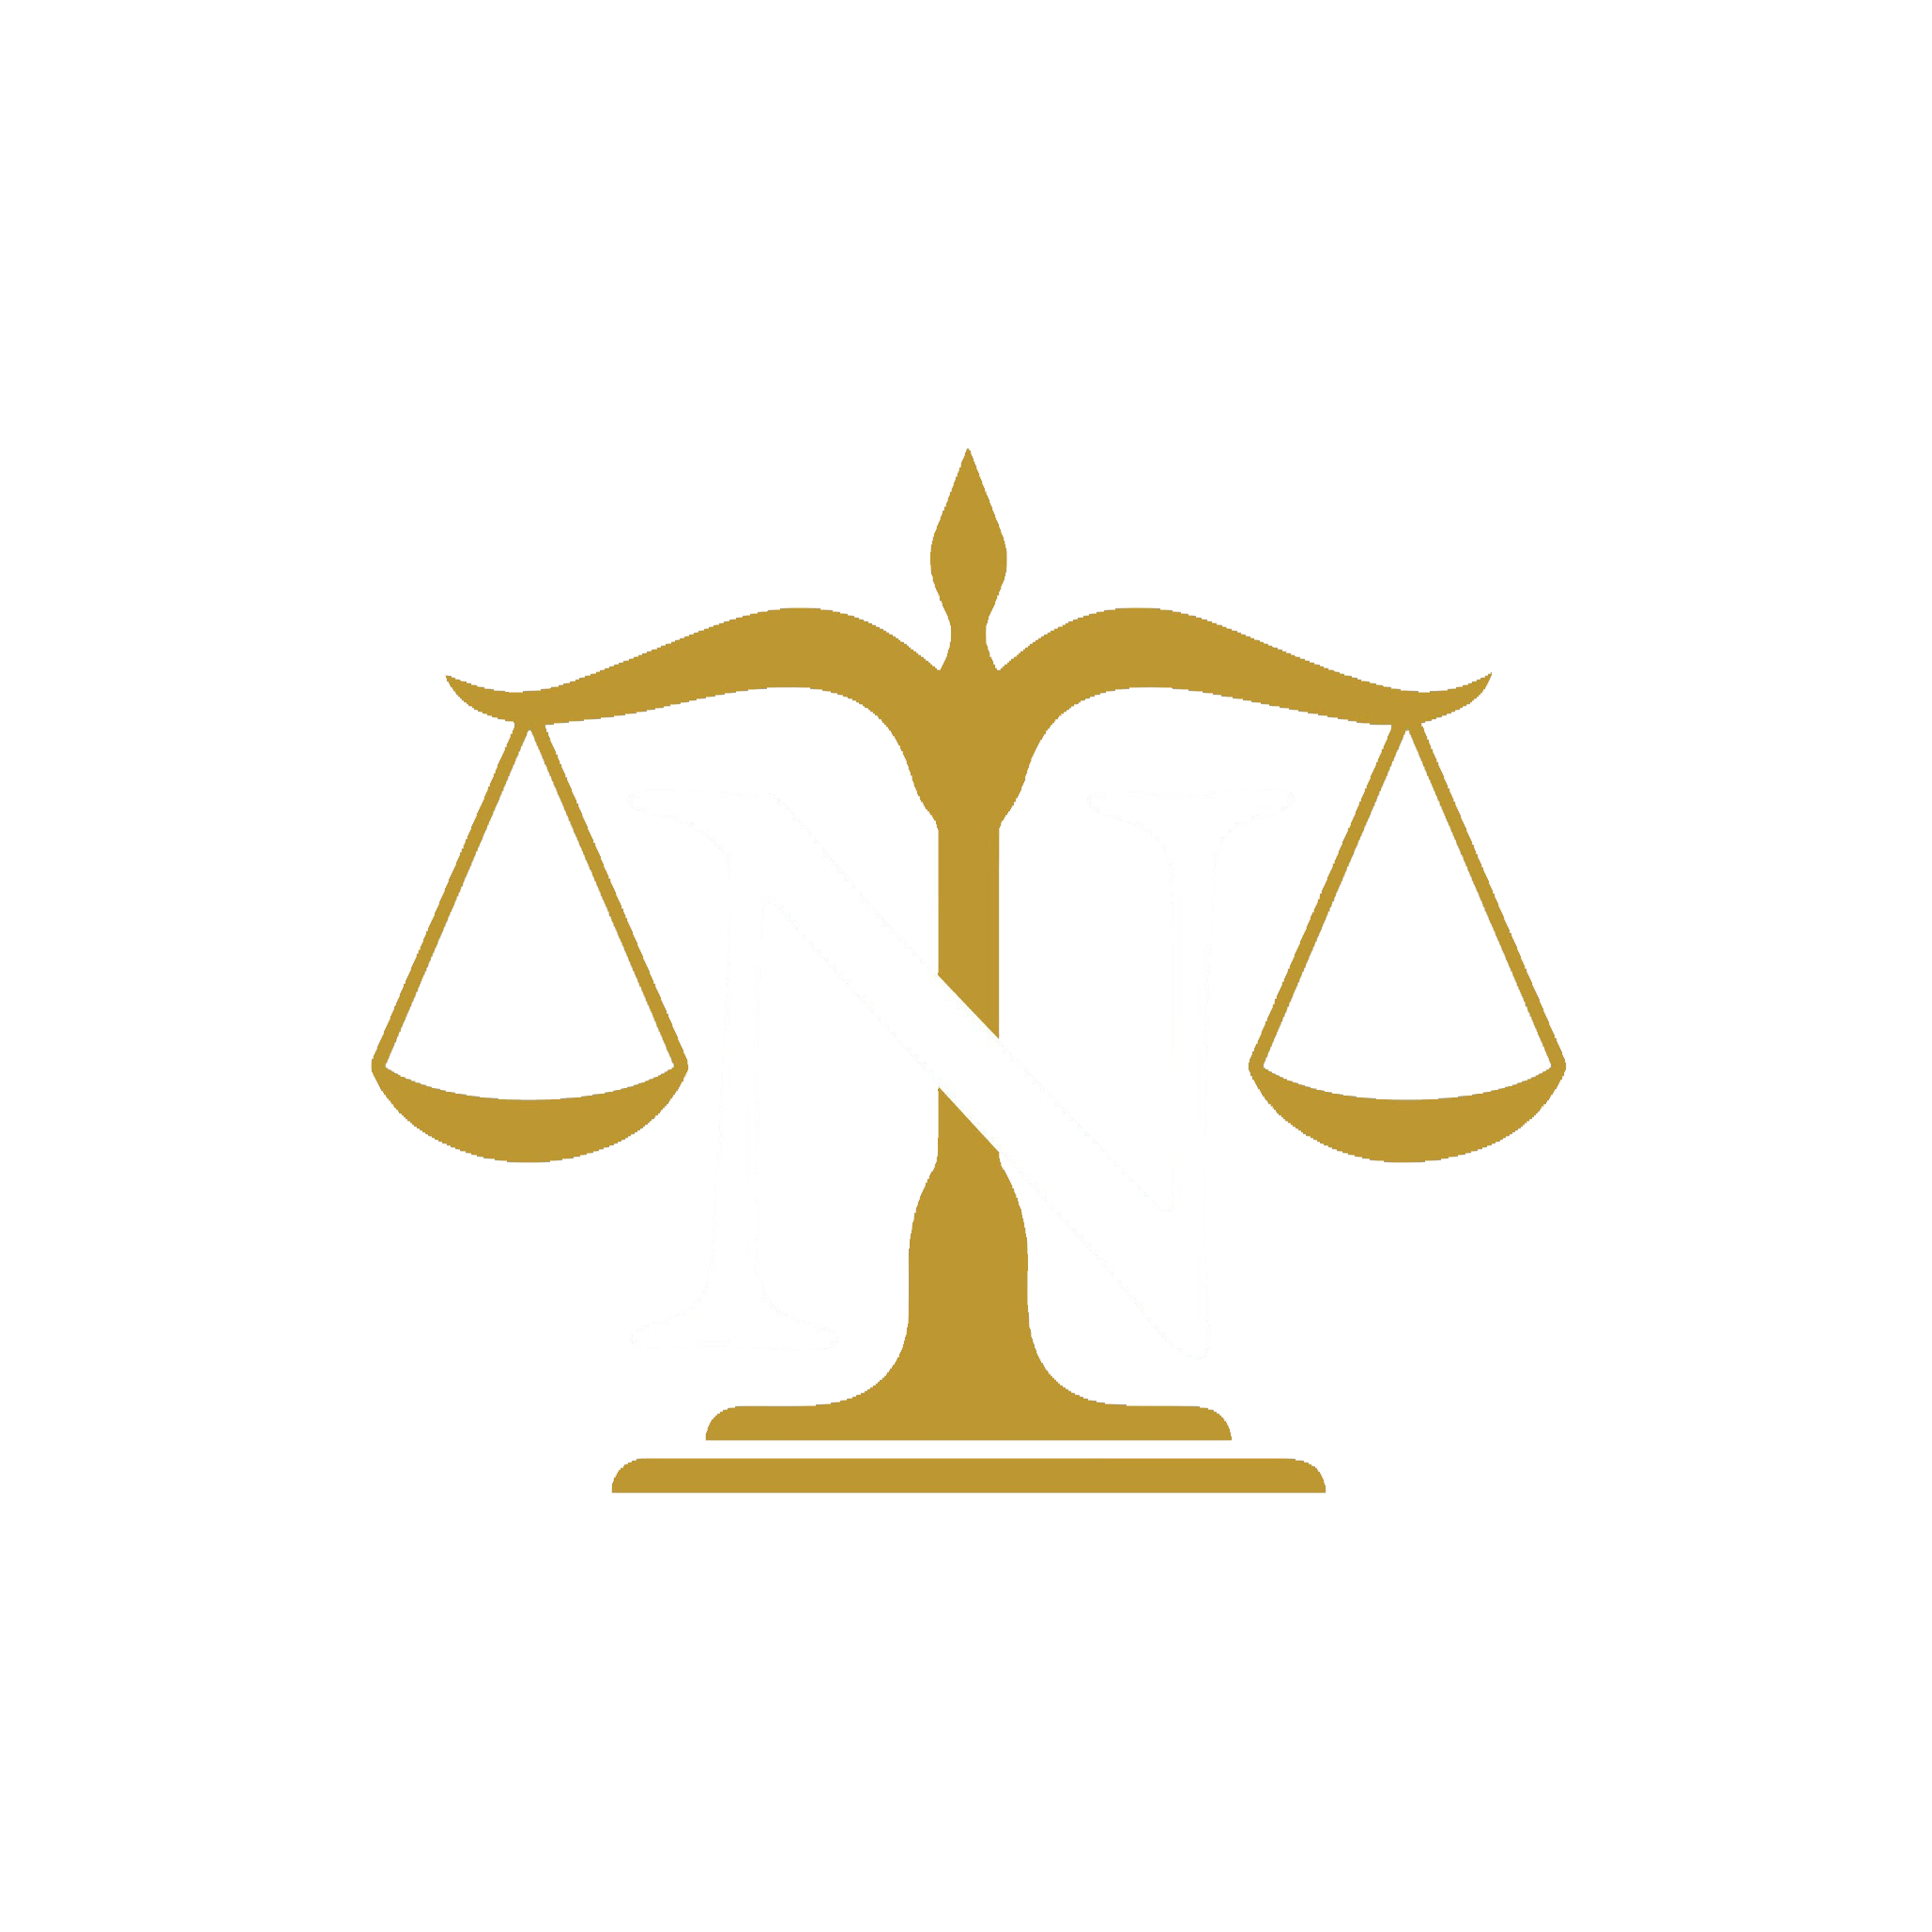 Norton Law Firm Transparent icon - justice scales